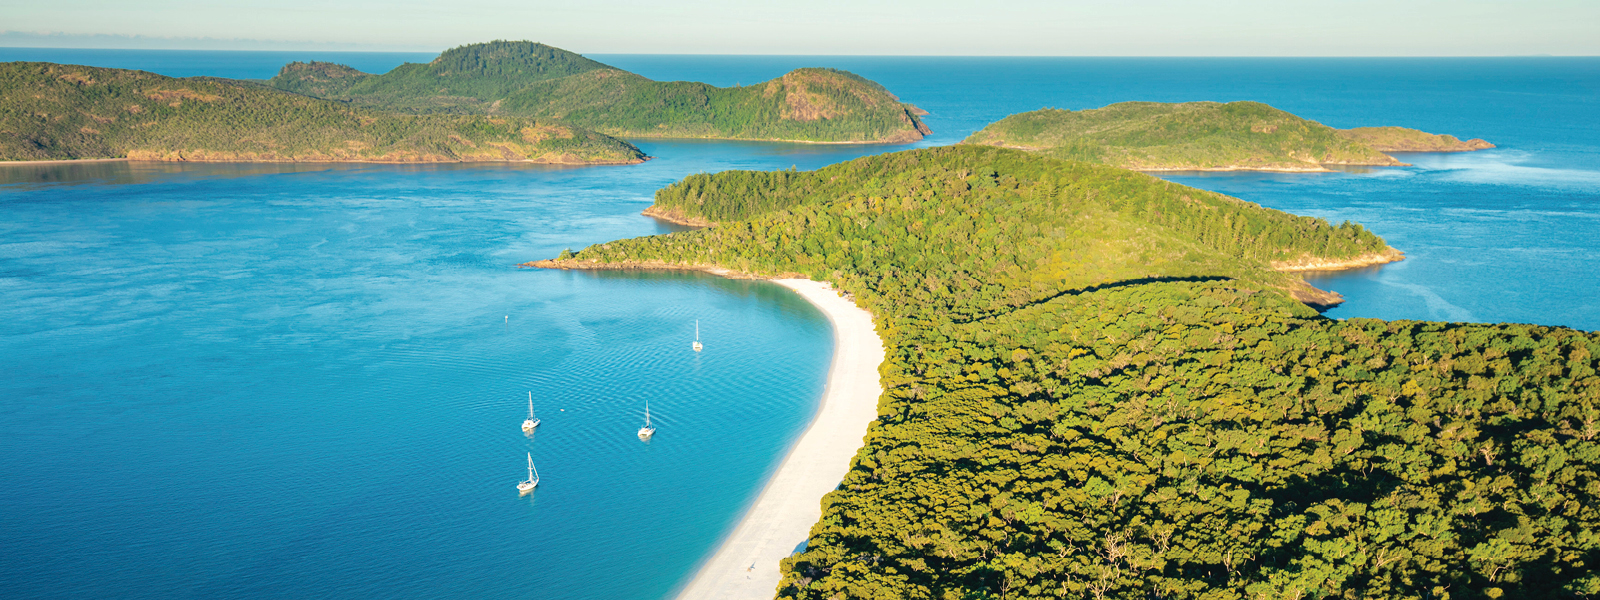 Cruise the Whitsunday islands